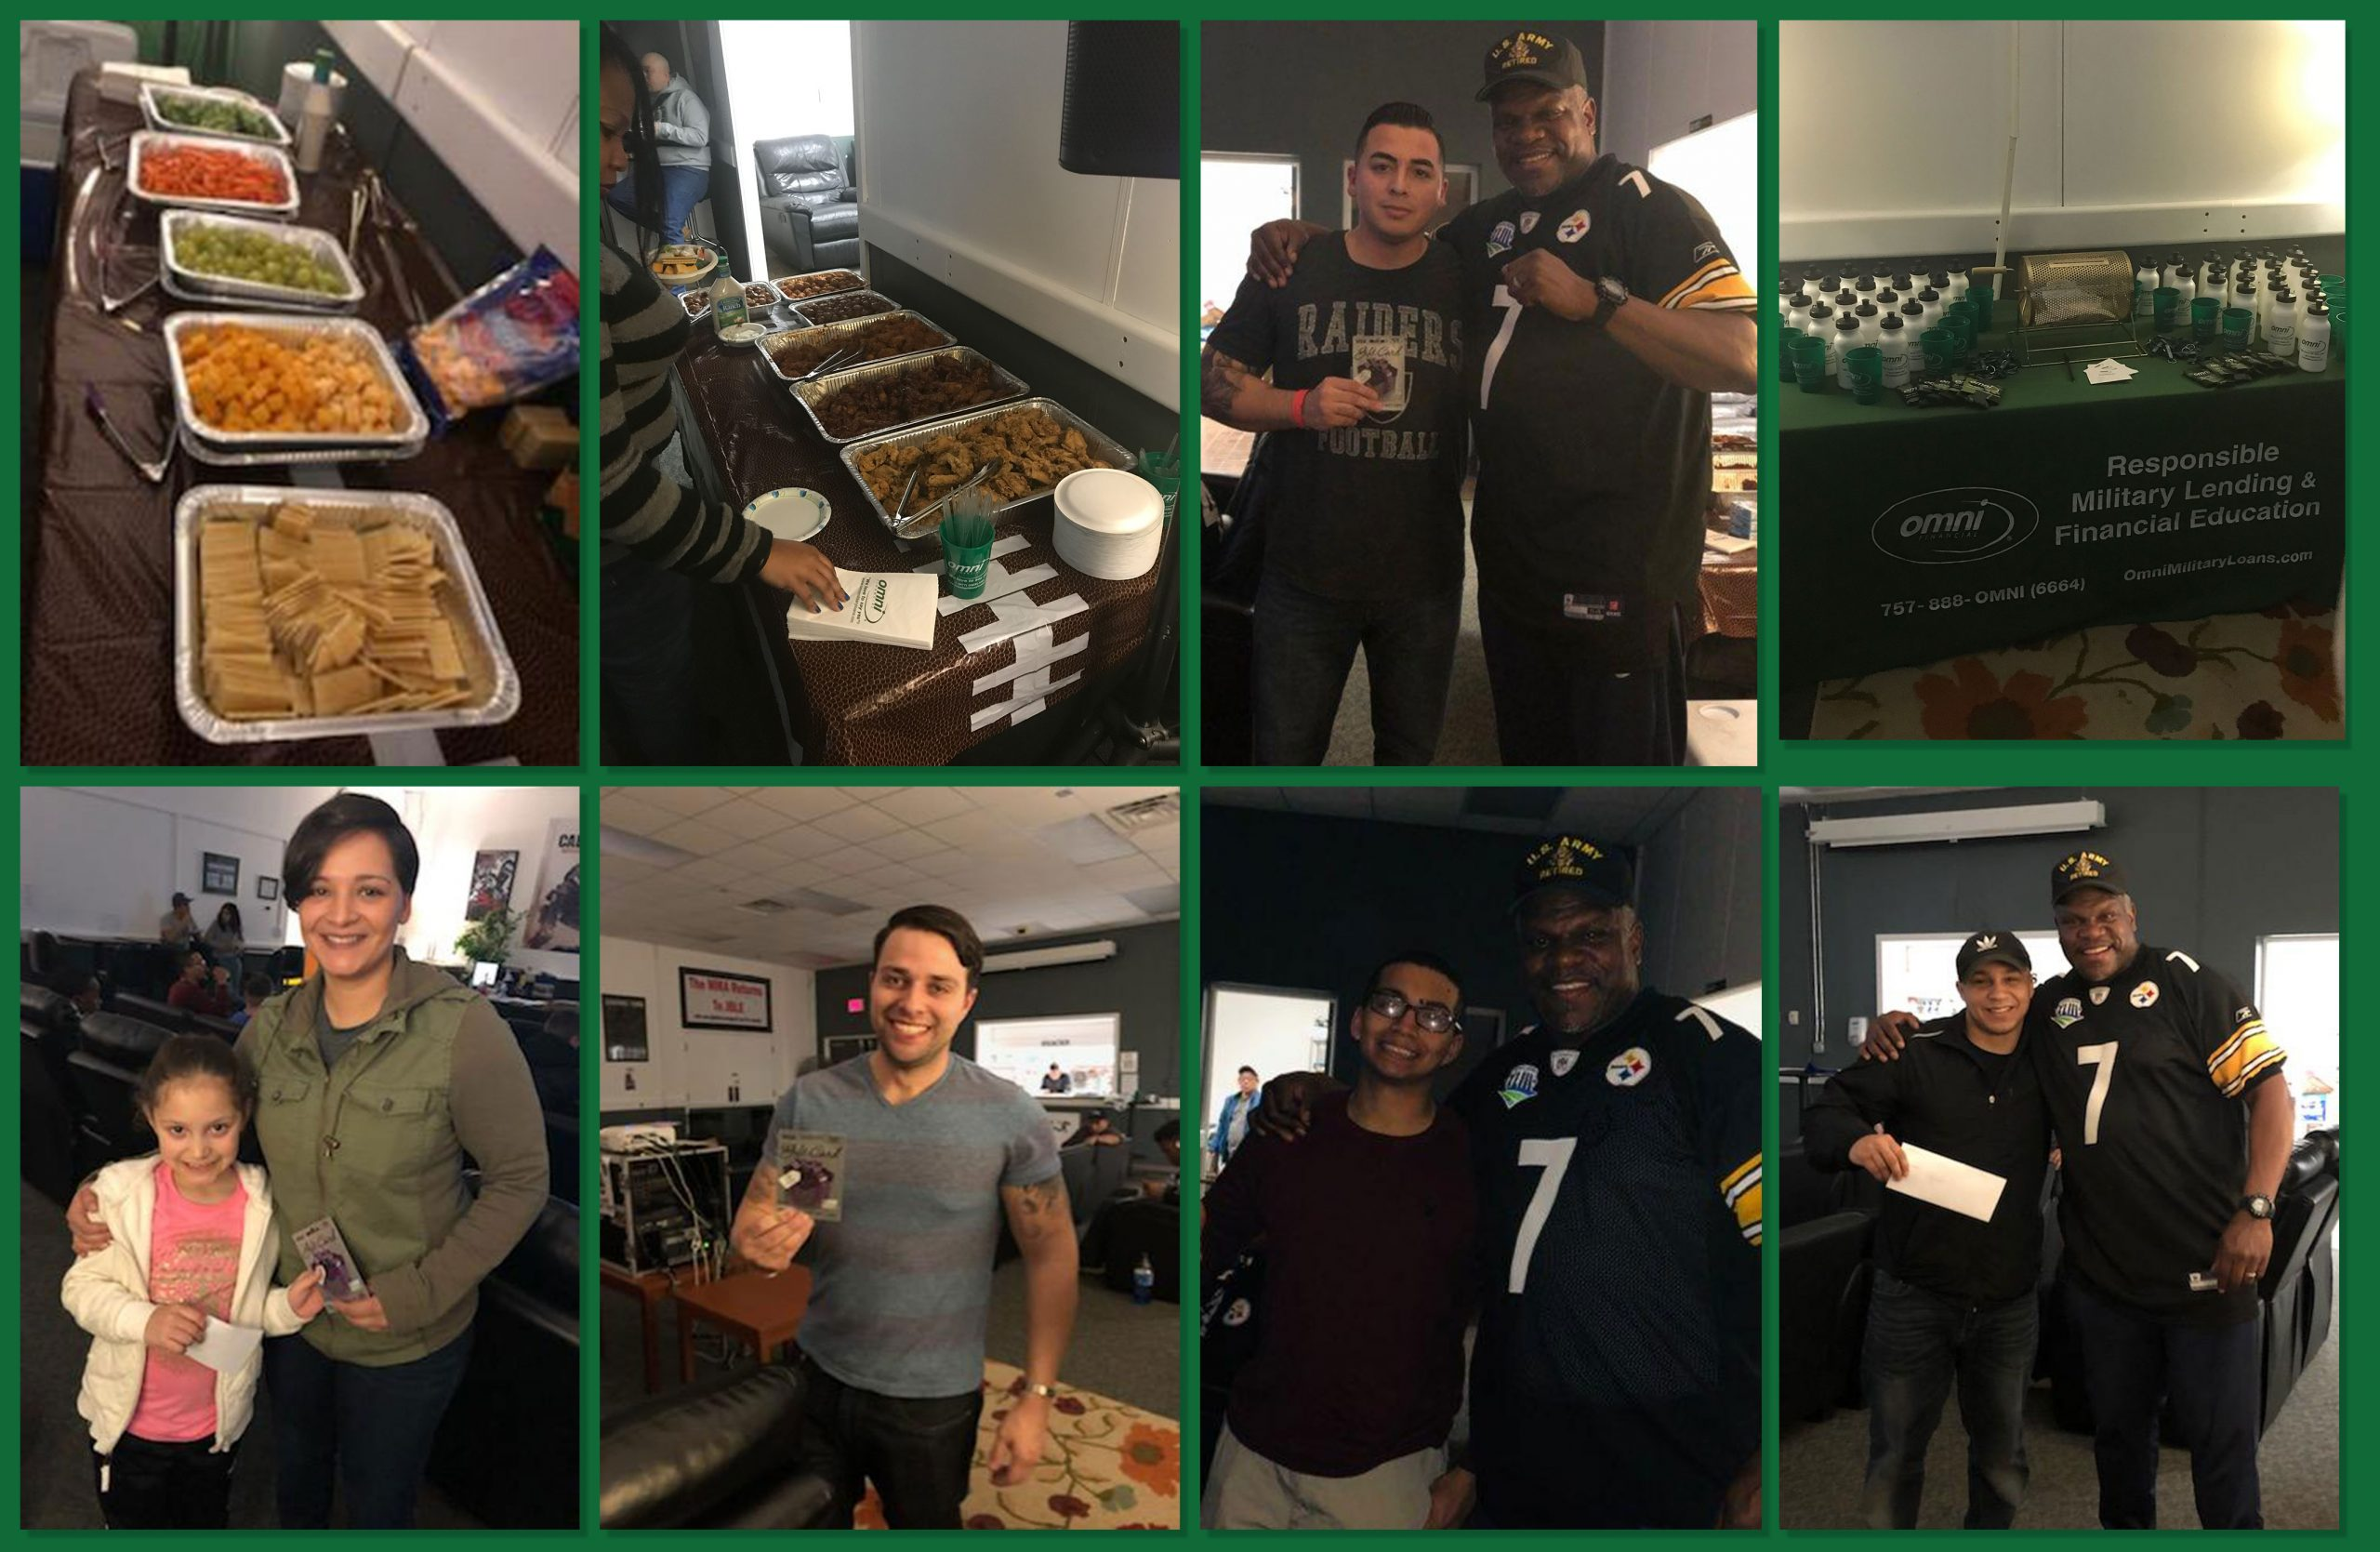 Omni in Newport News partnered with Family and MWR for the Big Game 2019   Omni Military Loans